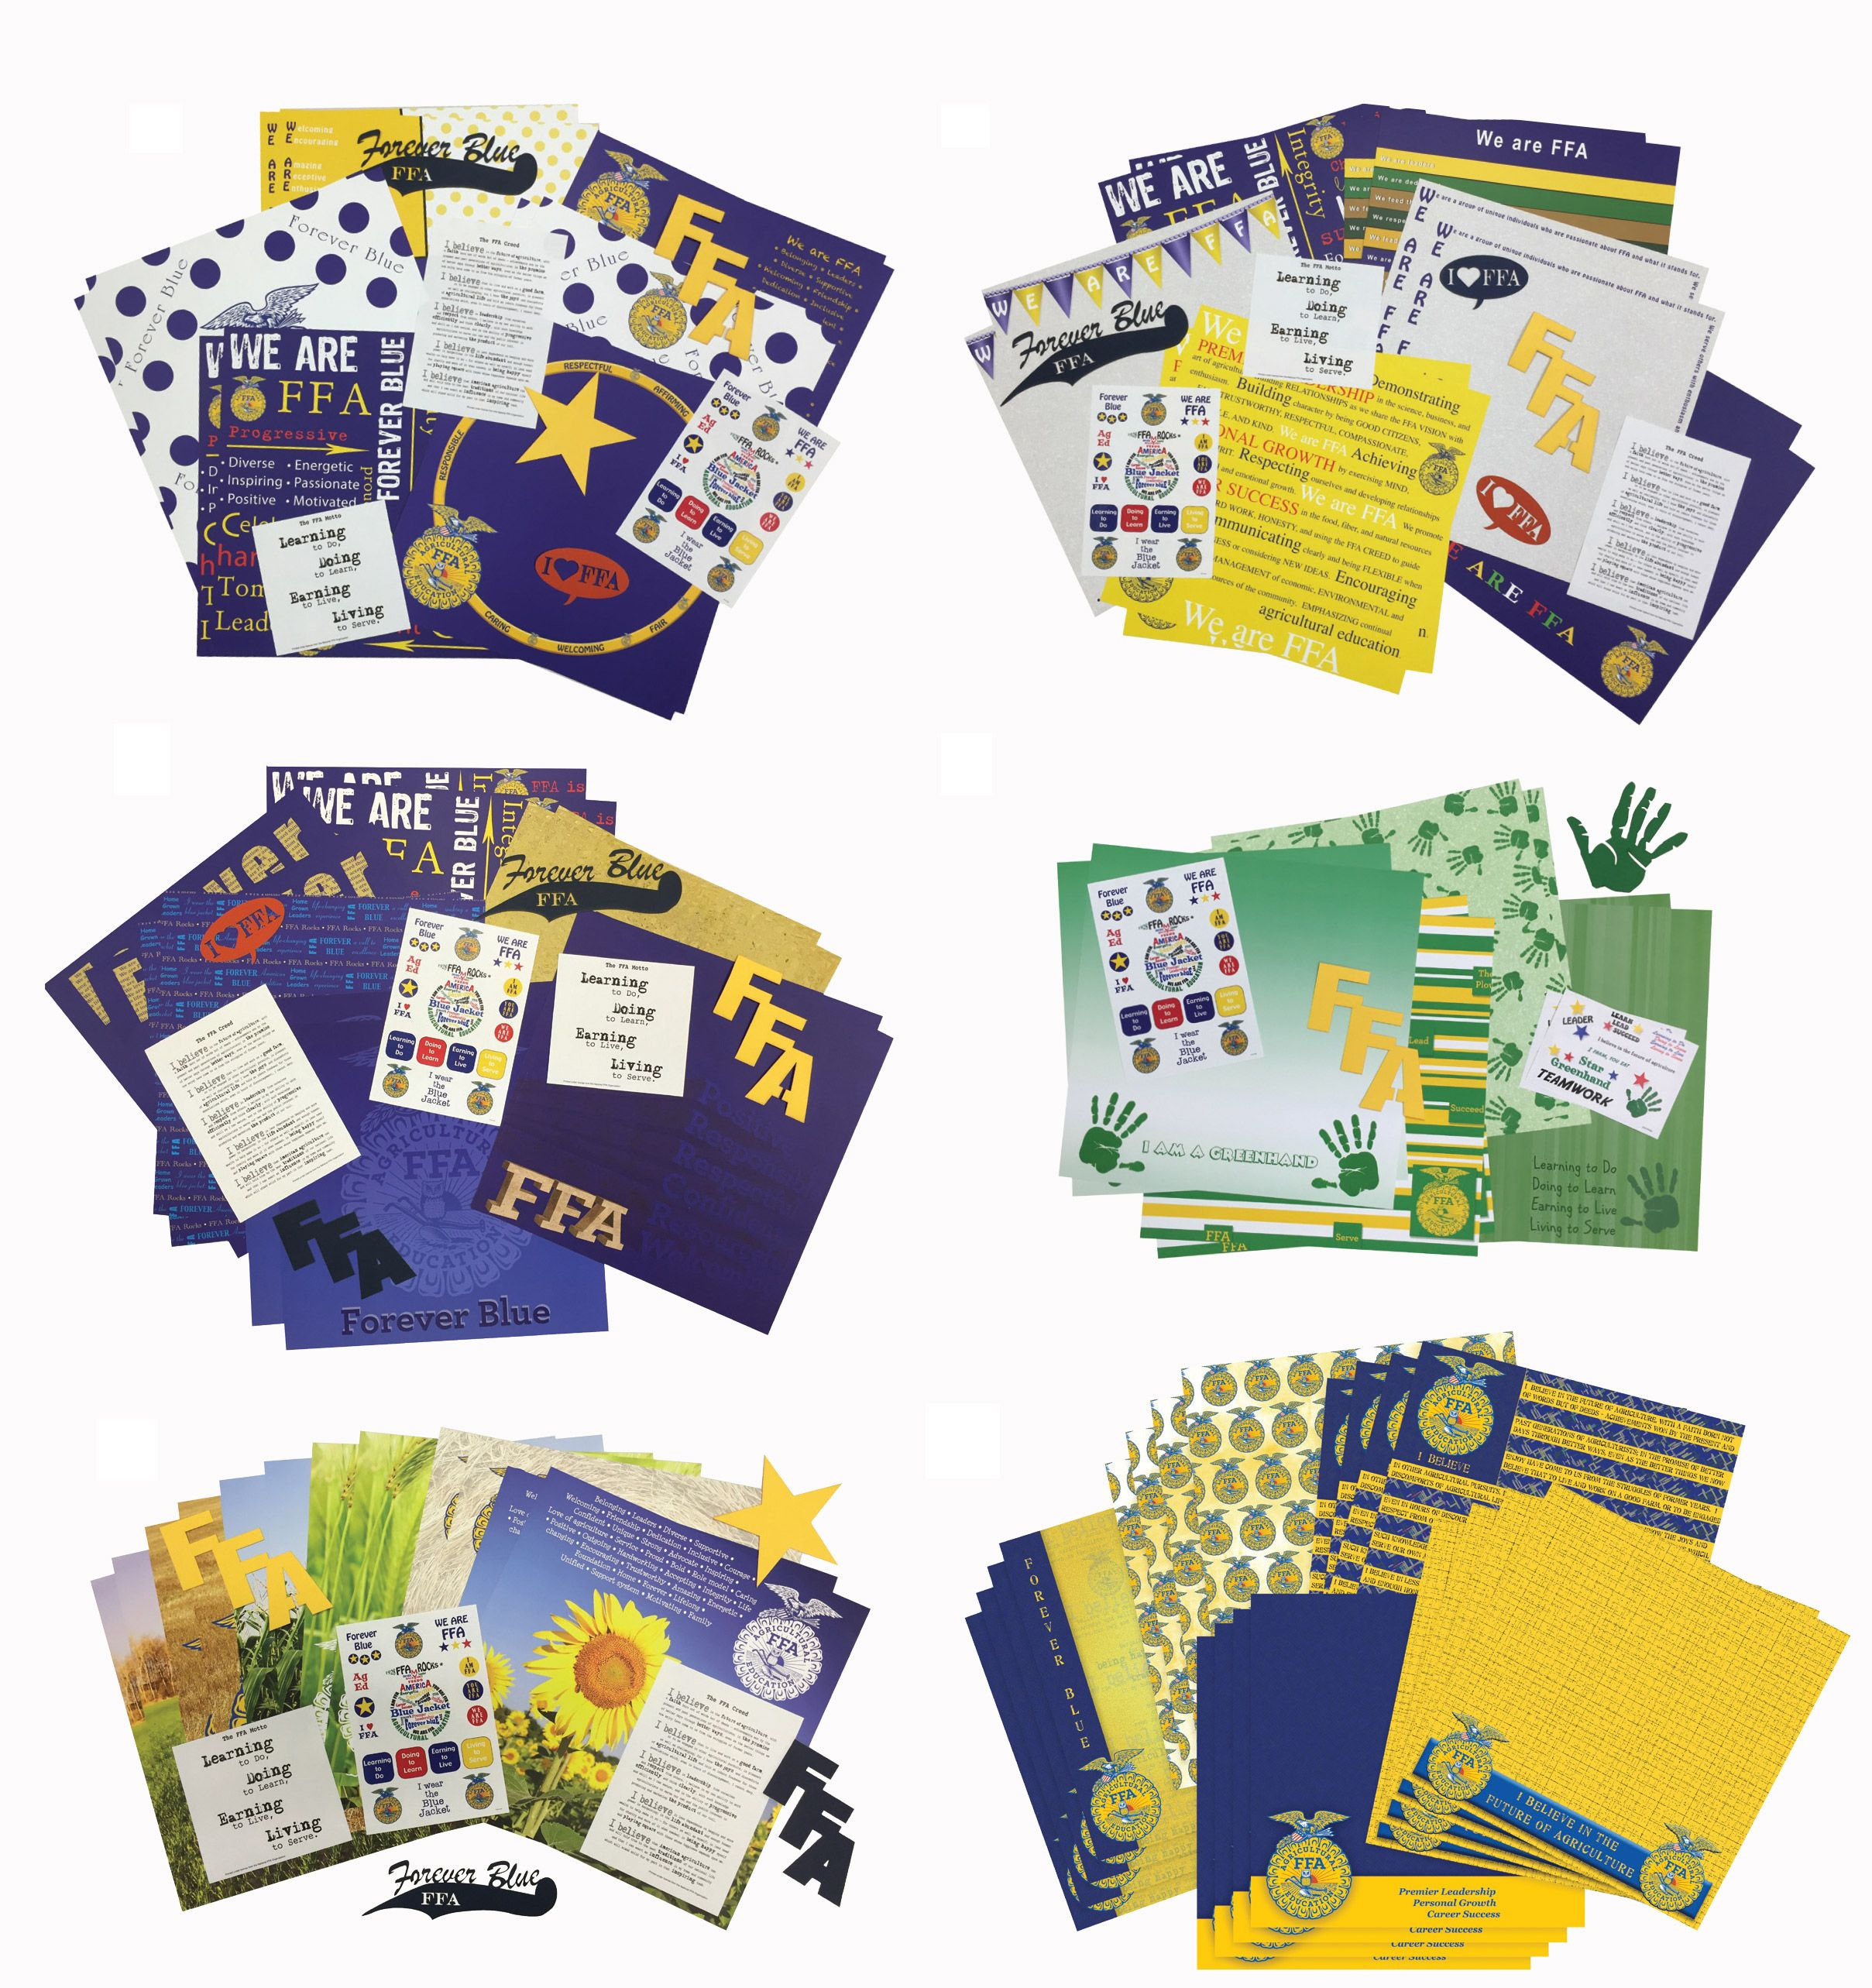 All Your Ffa Scrapbooking Needs In One Pack At Shop Ffa Shop Ffa